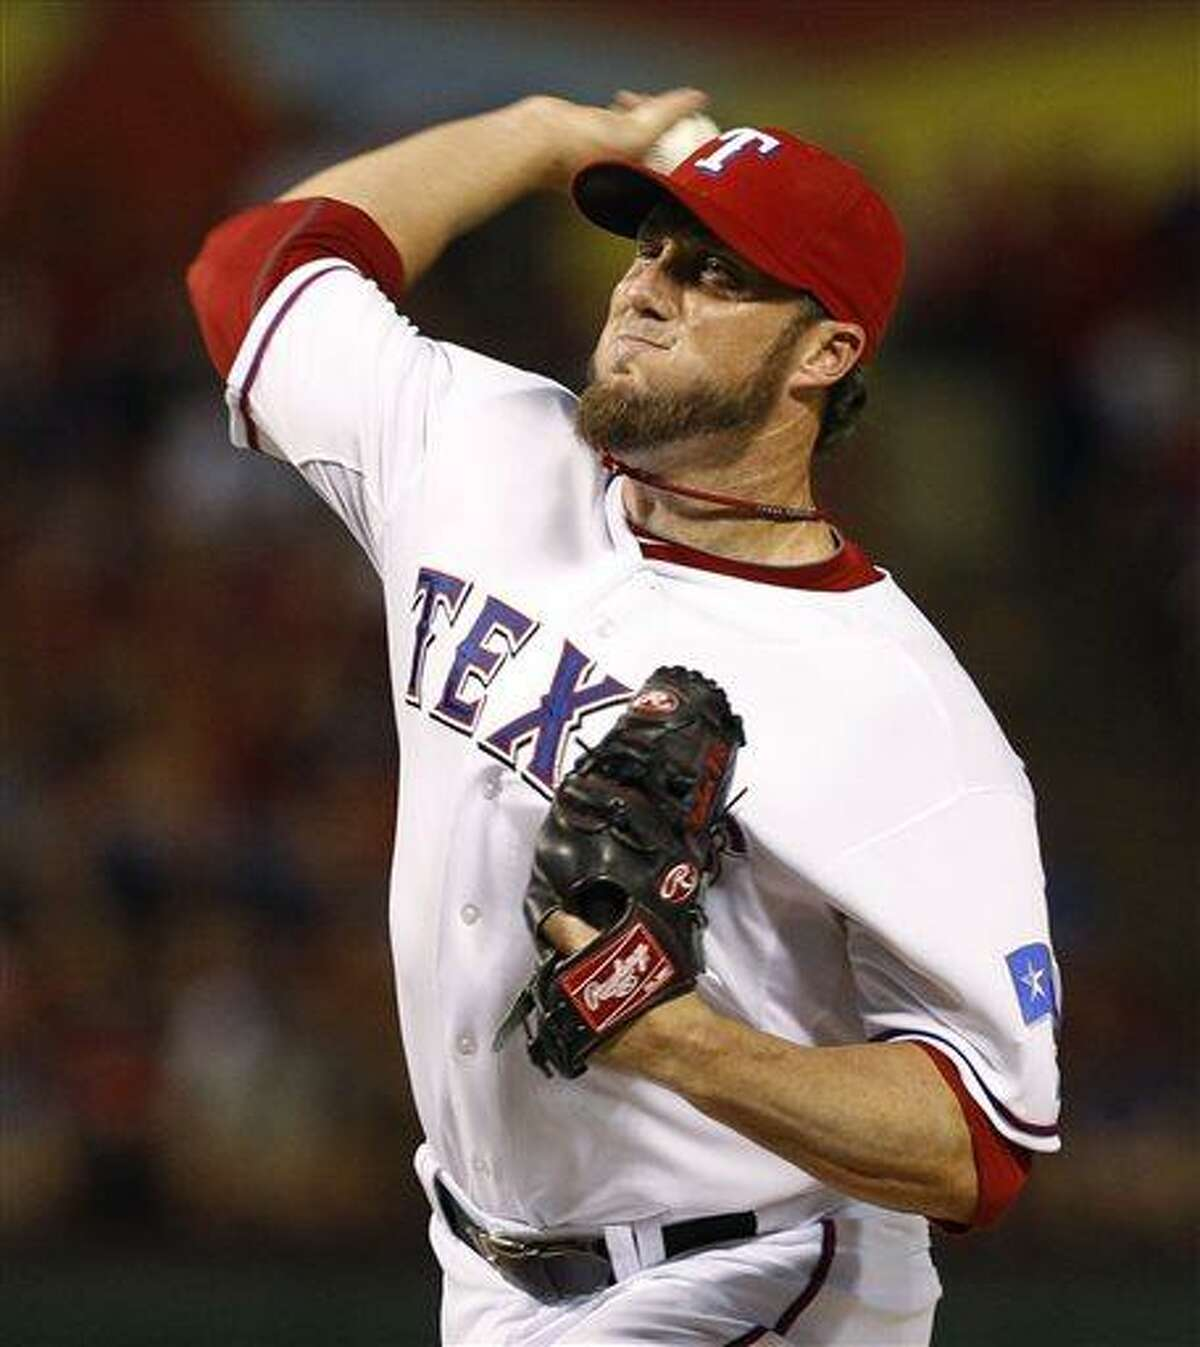 Texas Rangers relief pitcher Joe Nathan throws to the New York Yankees during the ninth inning of a baseball game, Wednesday, July 24, 2013, in Arlington, Texas. The Rangers won 3-1. (AP Photo/Jim Cowsert)